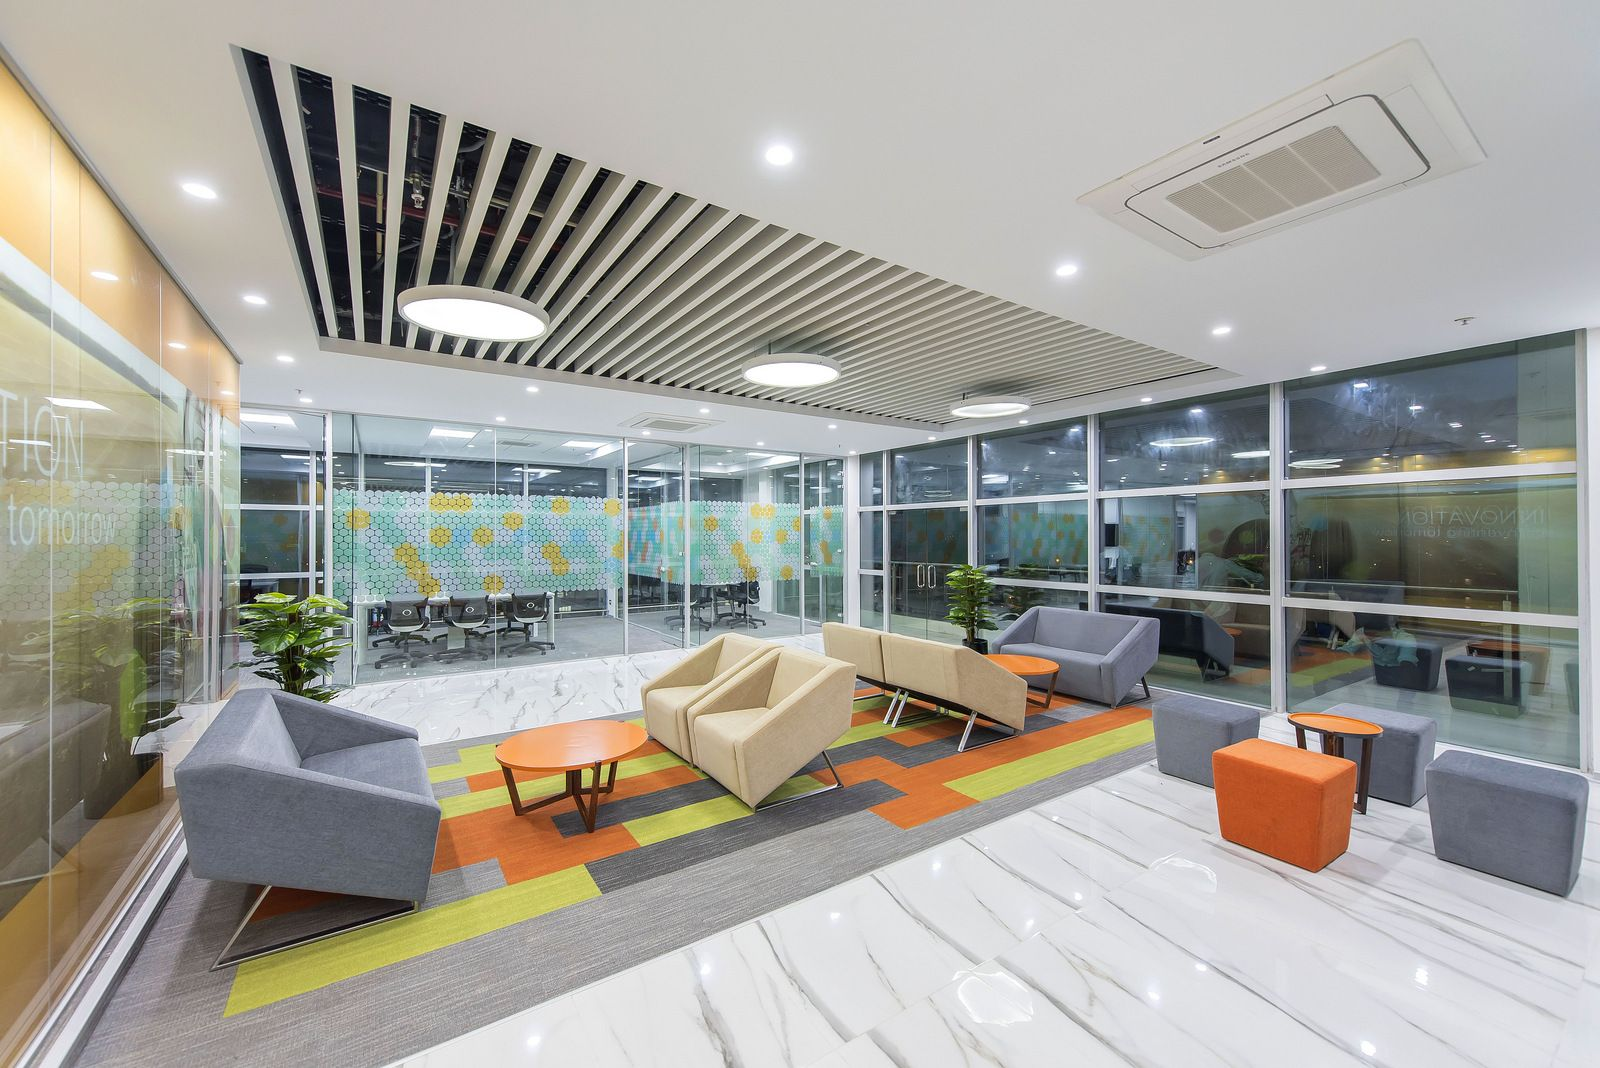 Office Tour Trelleborg Offices Bangalore With Images Office